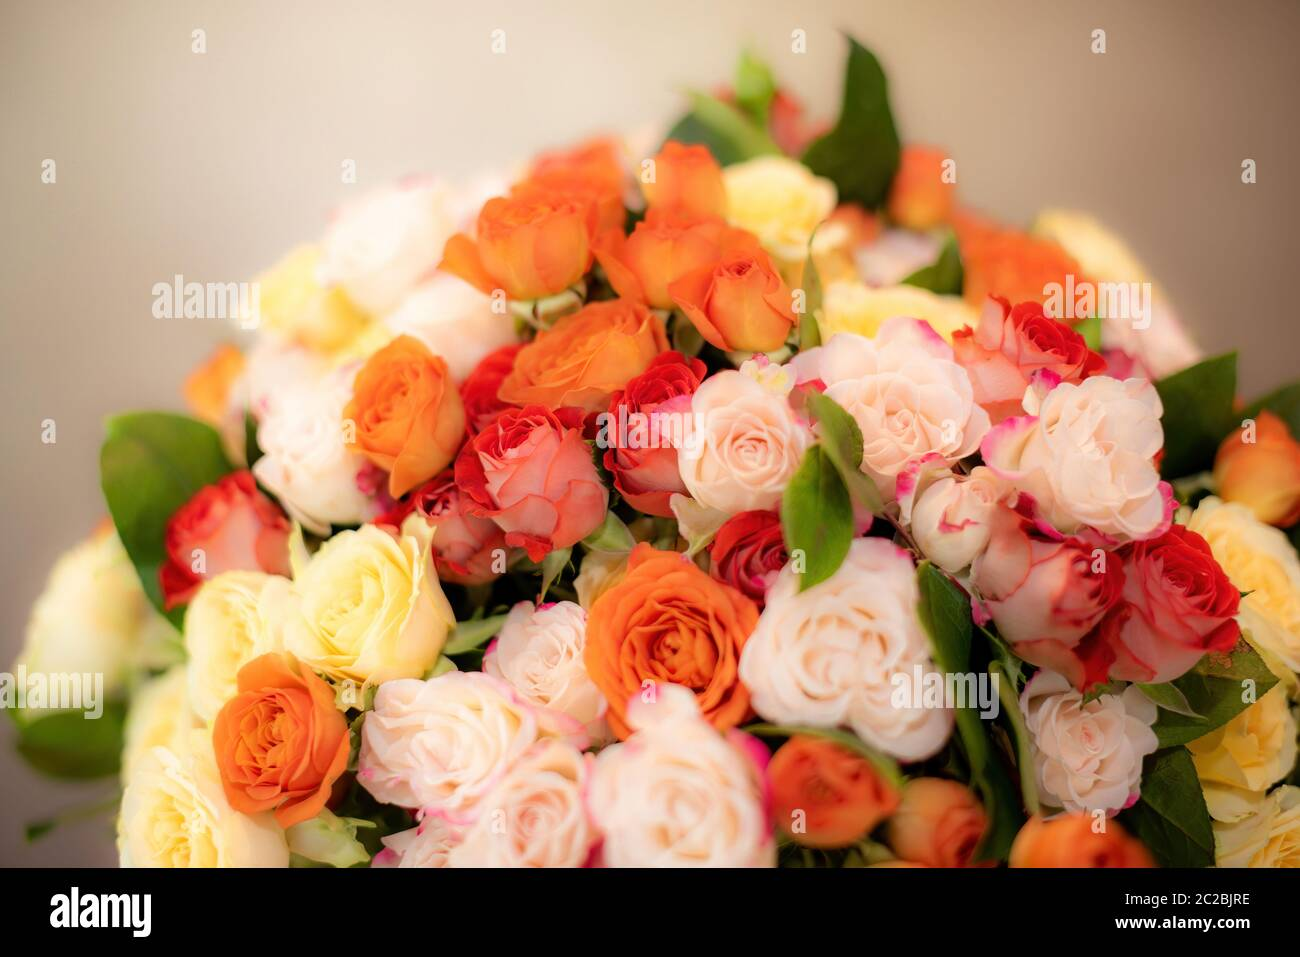 Colorful roses arranged in elegant bouquet and placed on beige background in studio Stock Photo